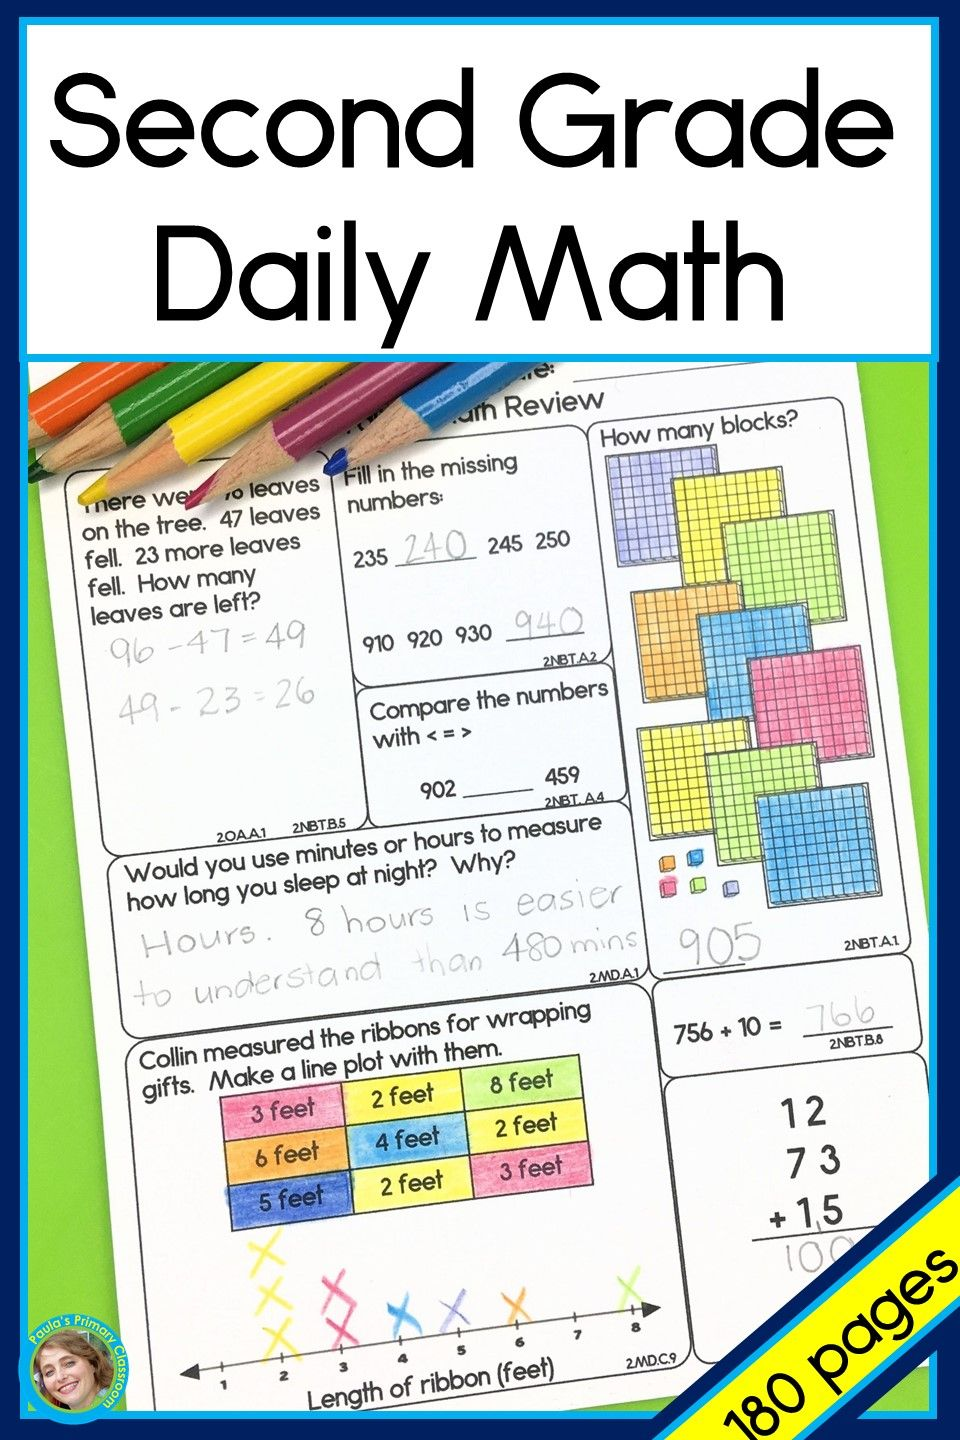 Second Grade Daily Math spiraling year long curriculum covering Common Core  State Standards   Daily math [ 1440 x 960 Pixel ]